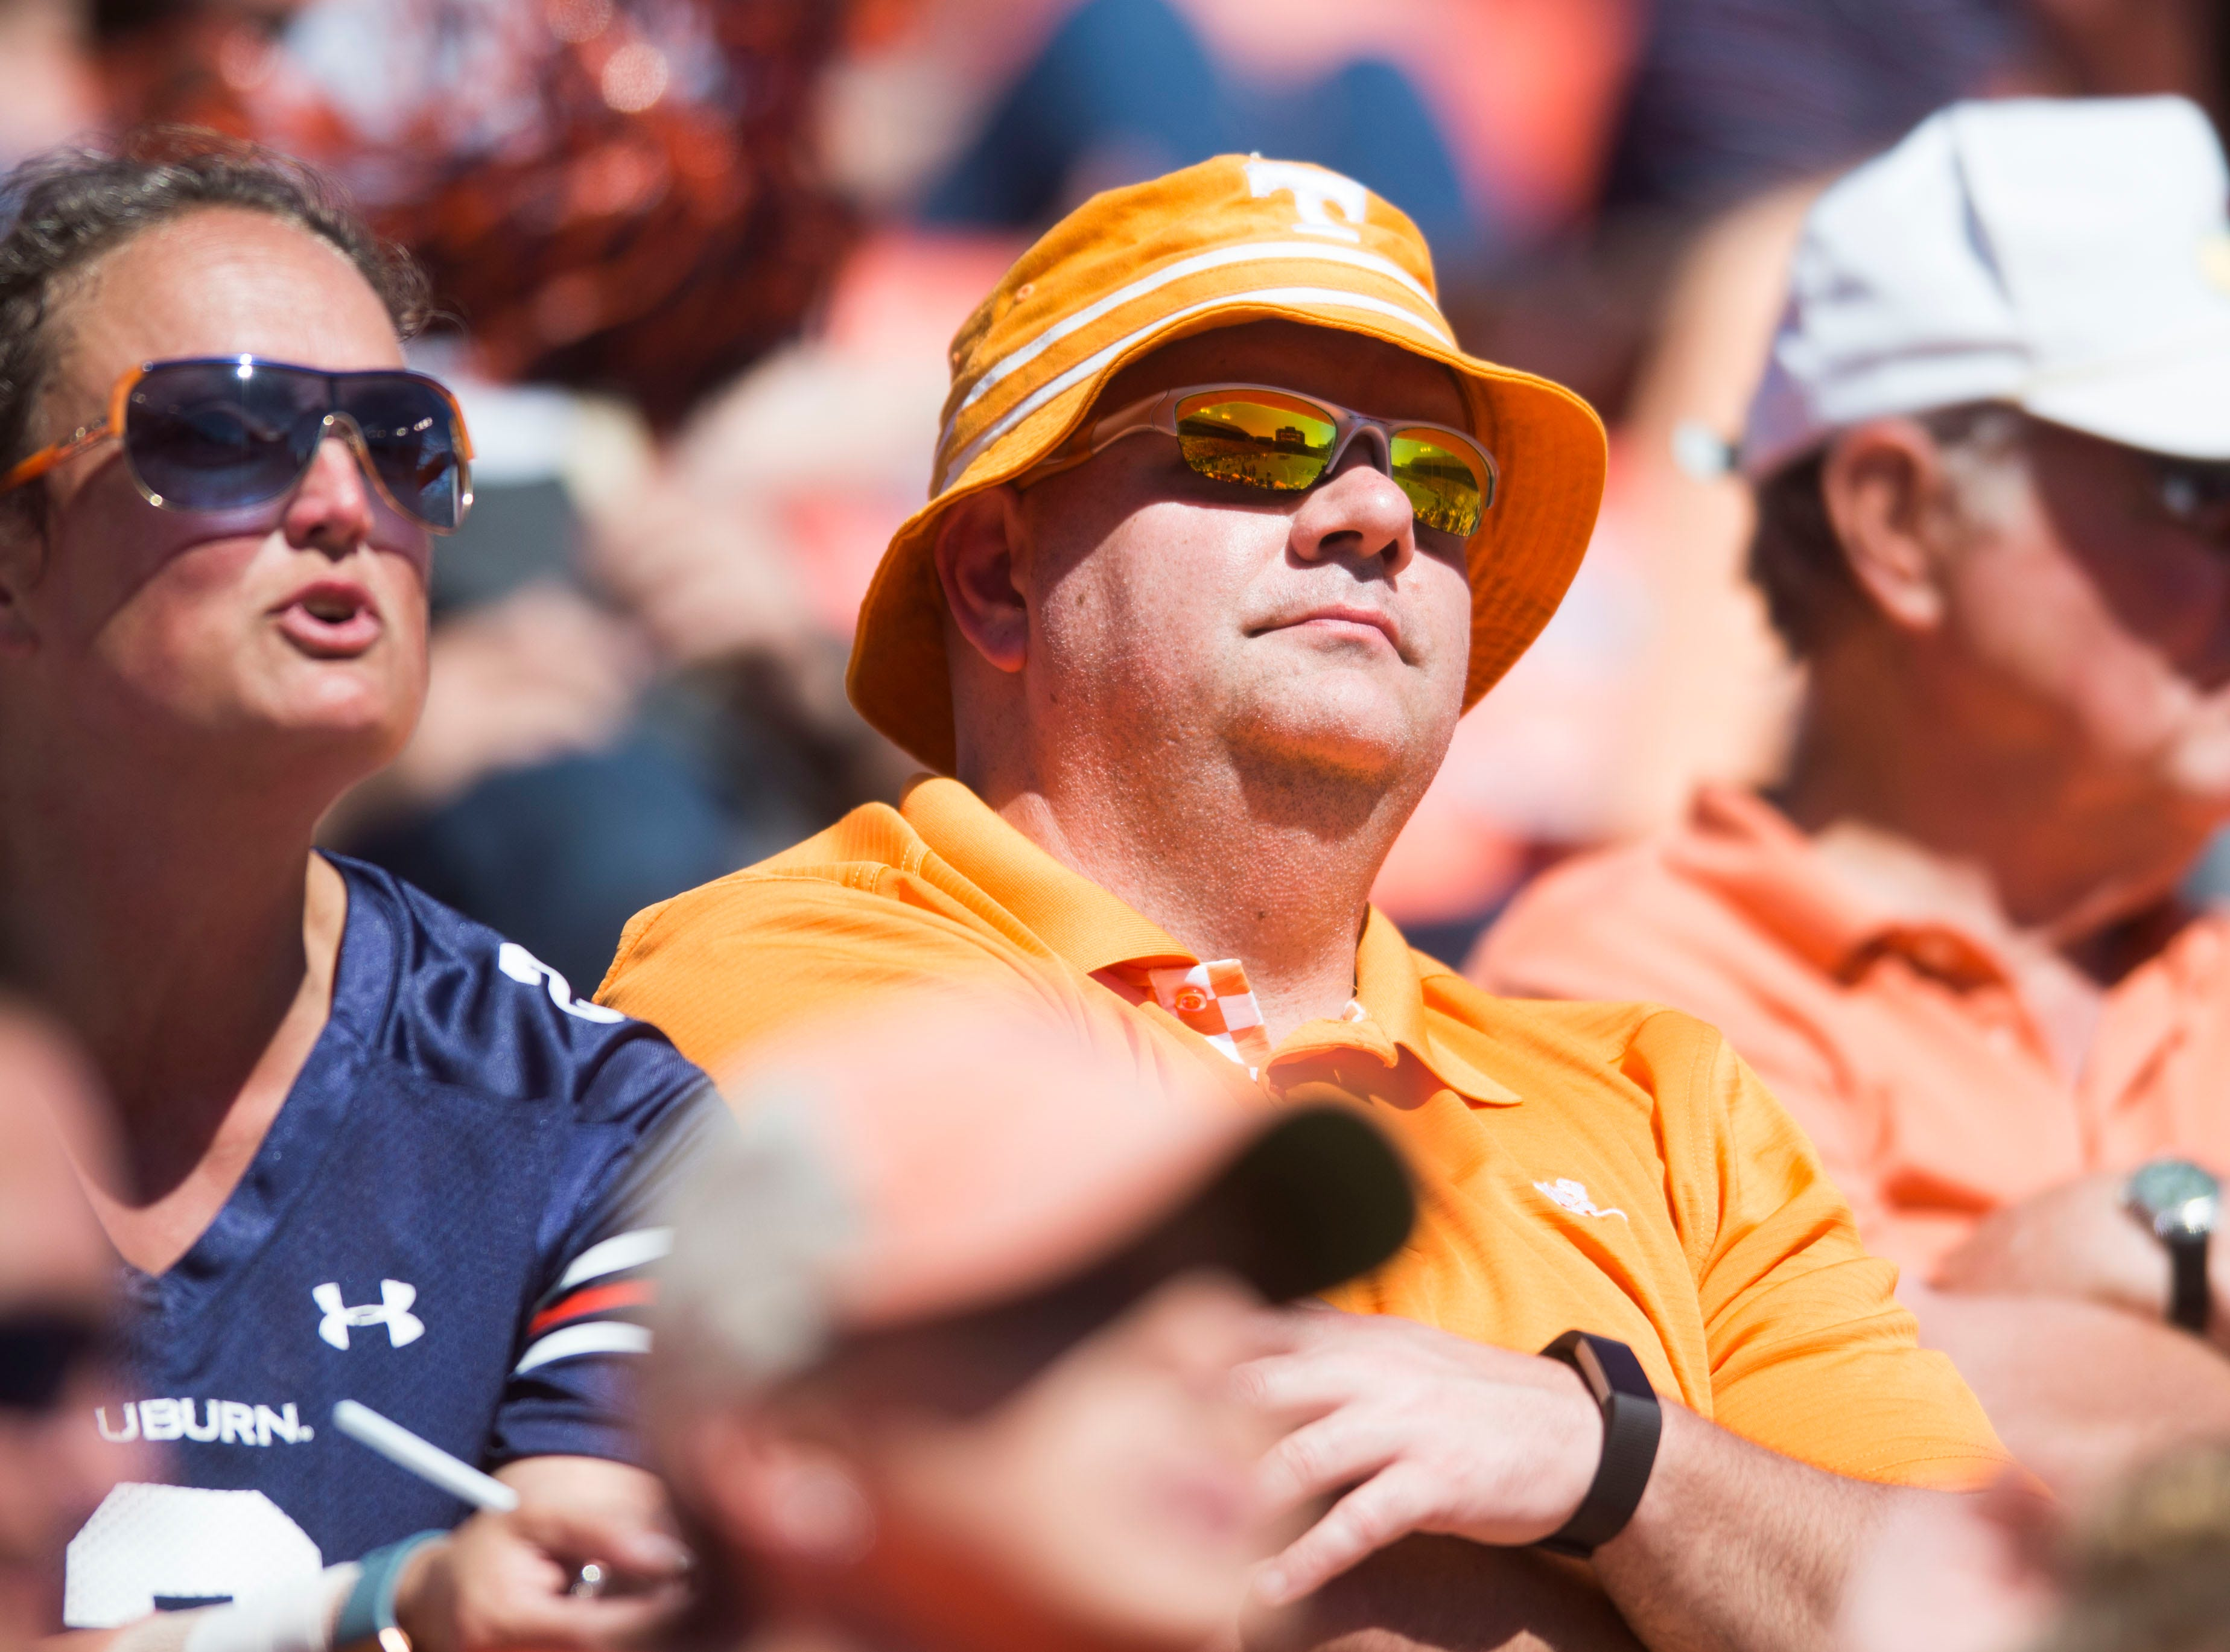 A fan watches during a game between Tennessee and Auburn at Jordan-Hare Stadium in Auburn, Ala. Saturday, Oct. 13, 2018. Tennessee defeated Auburn 30-24.